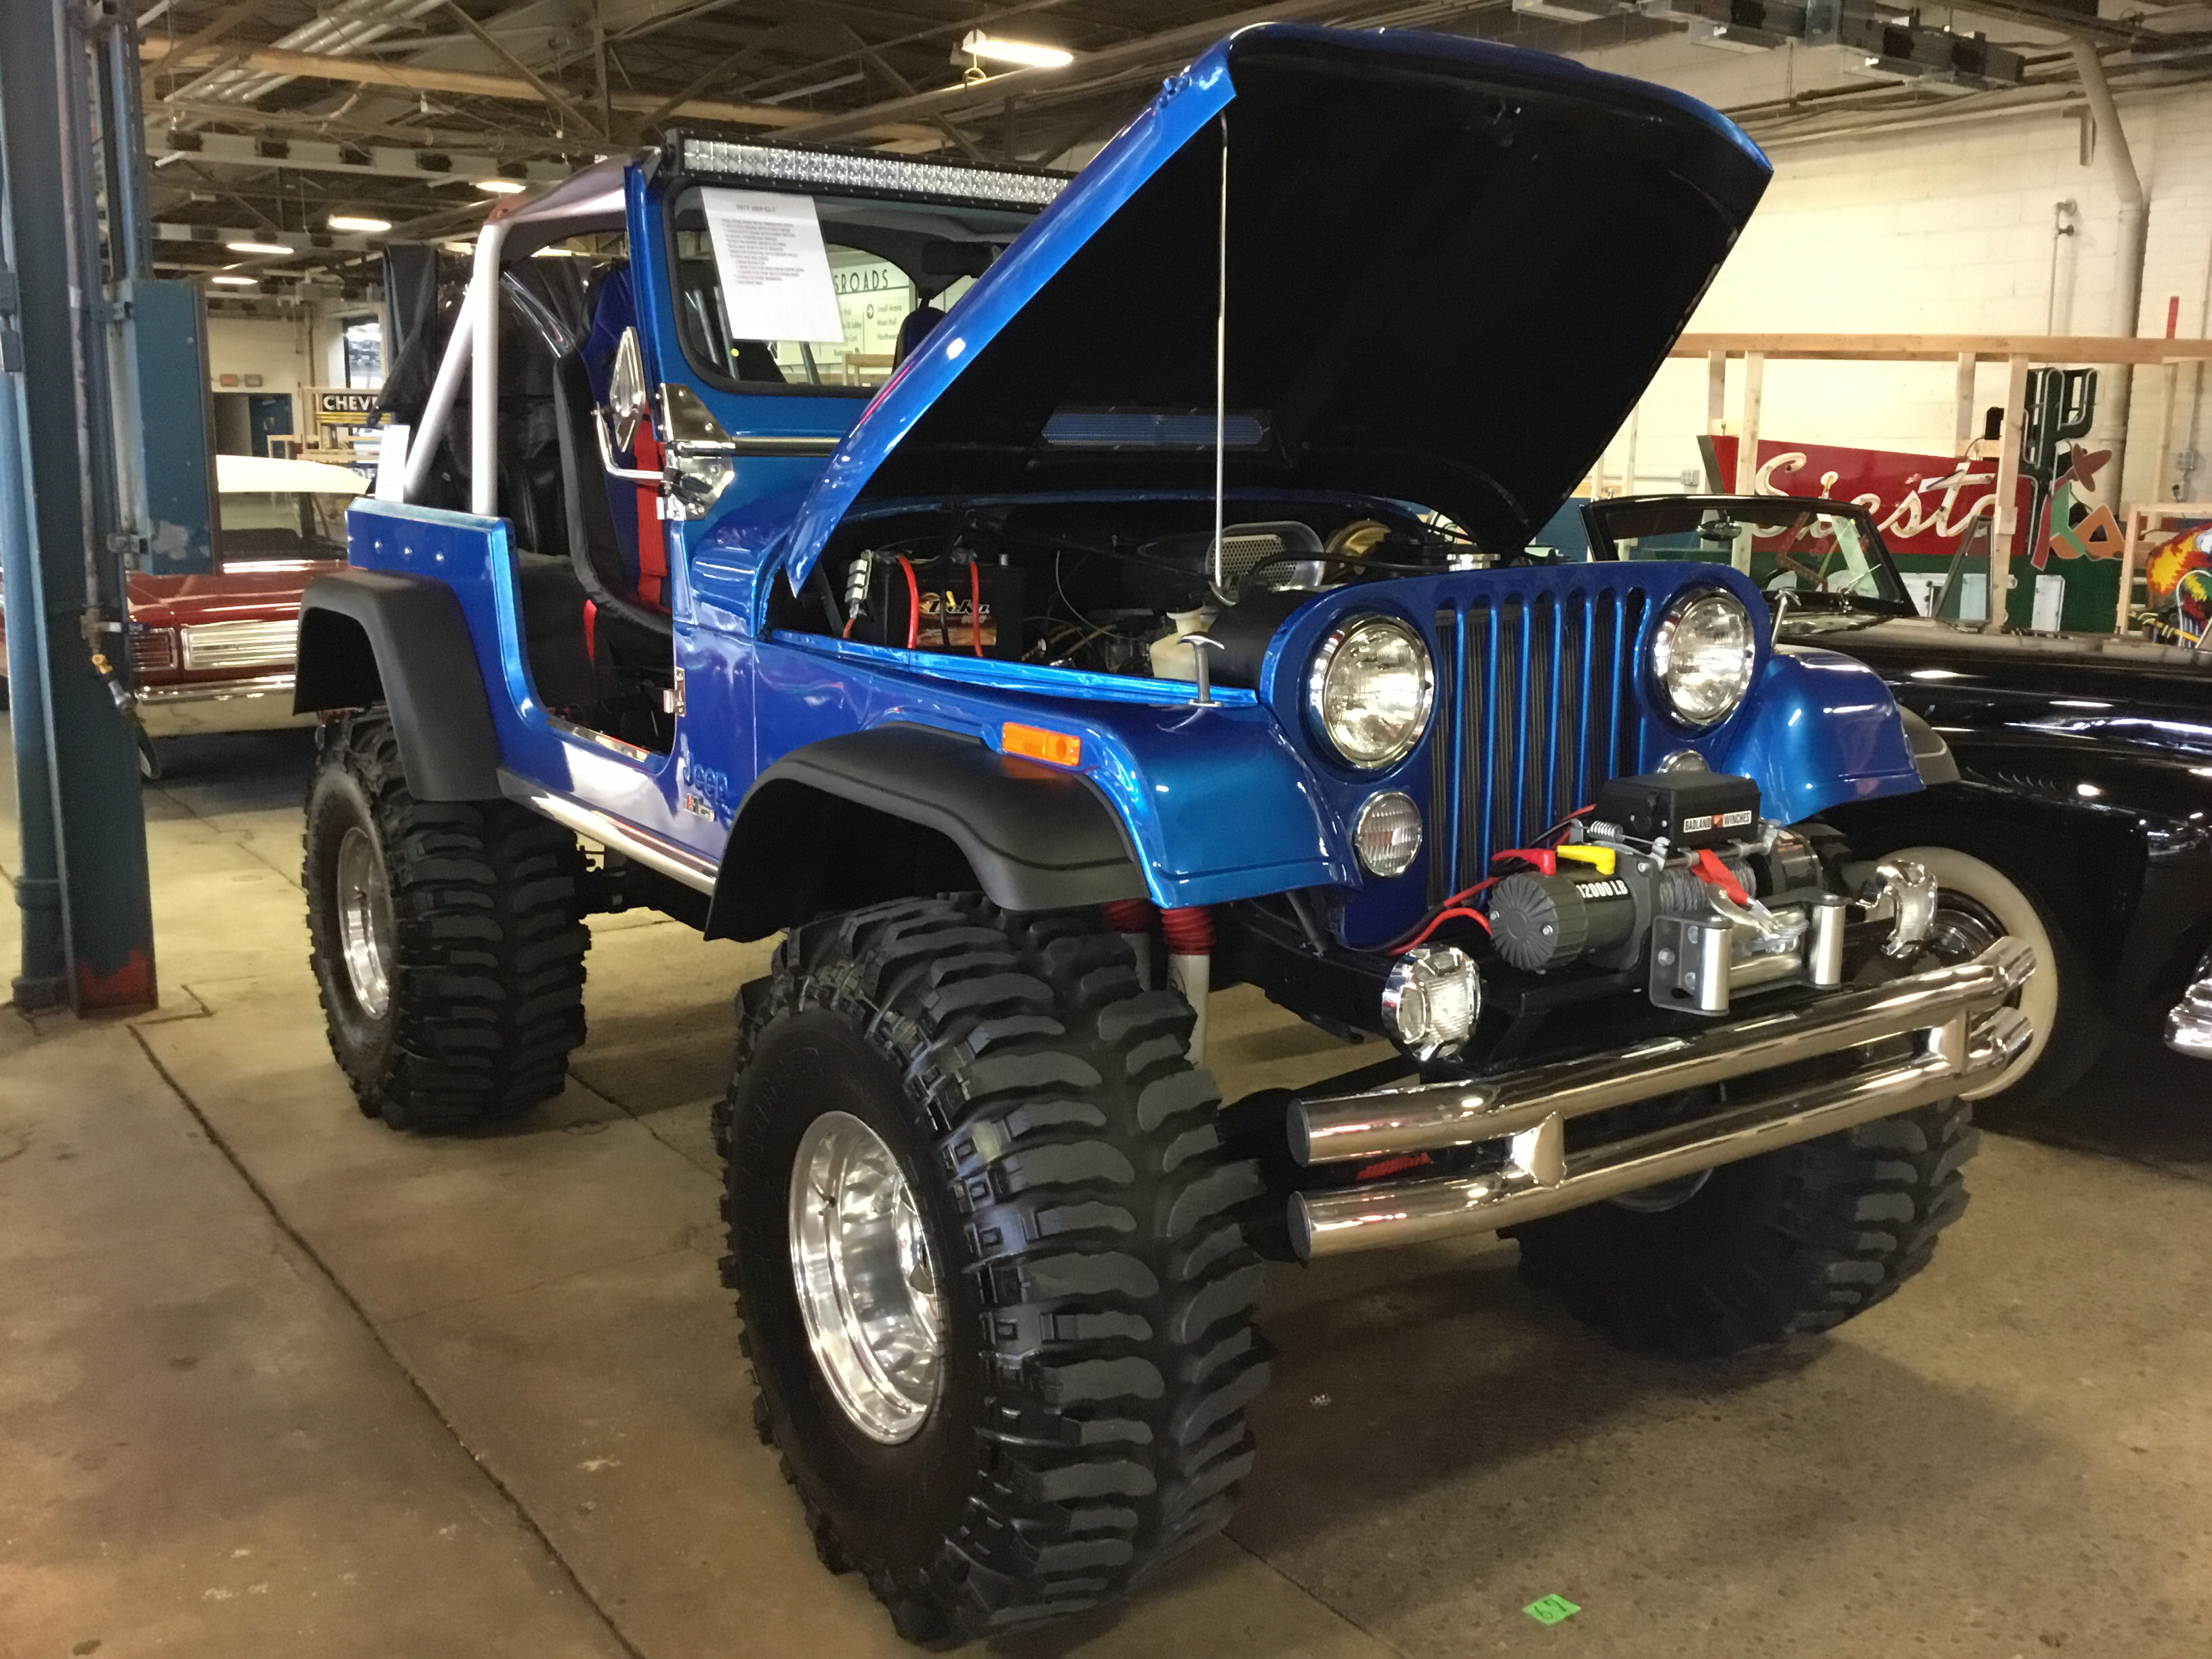 1979 Jeep CJ-7 Values | Hagerty Valuation Tool®